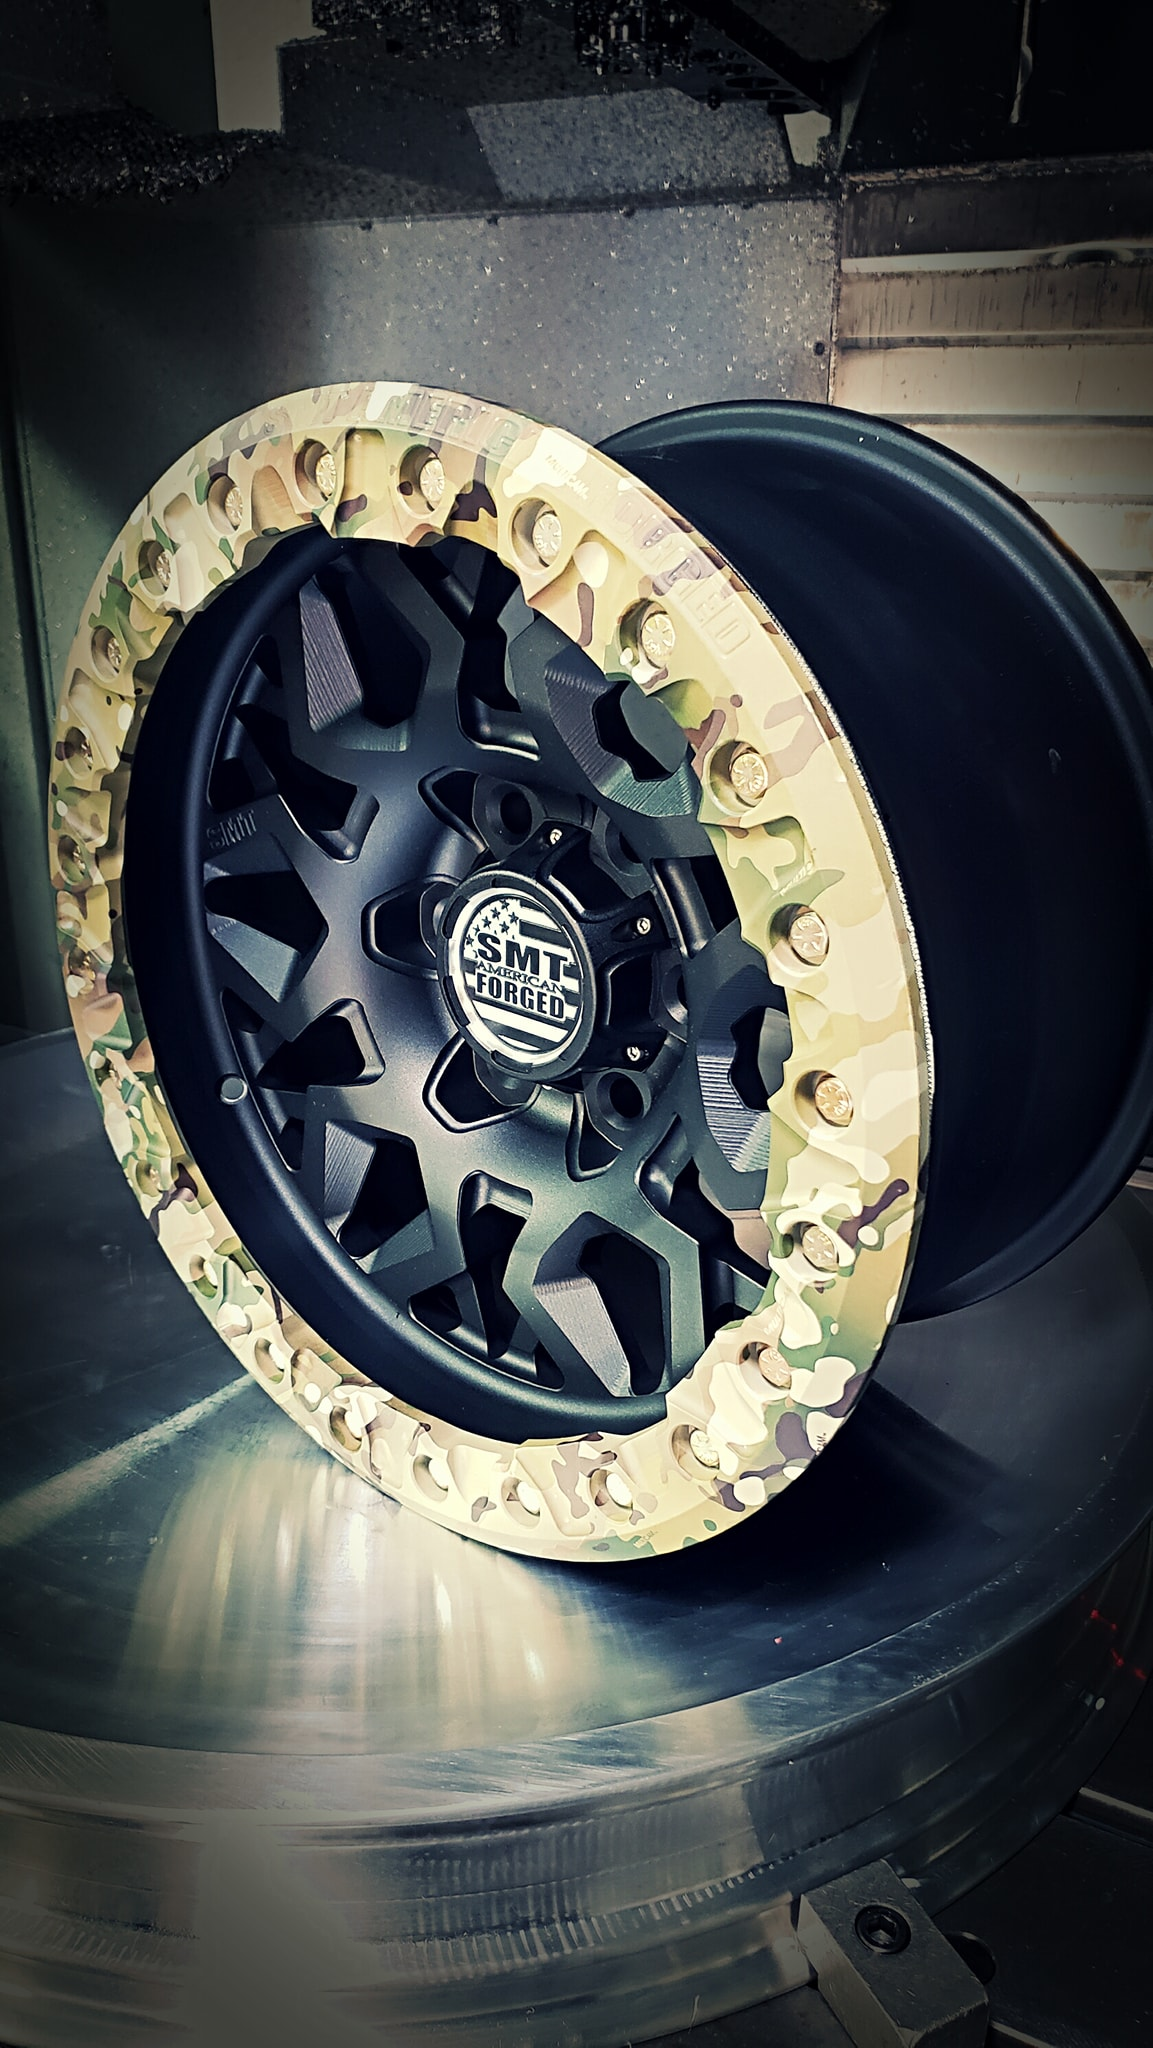 SMT American Forged Off Road Wheel RS5 black and camouflage